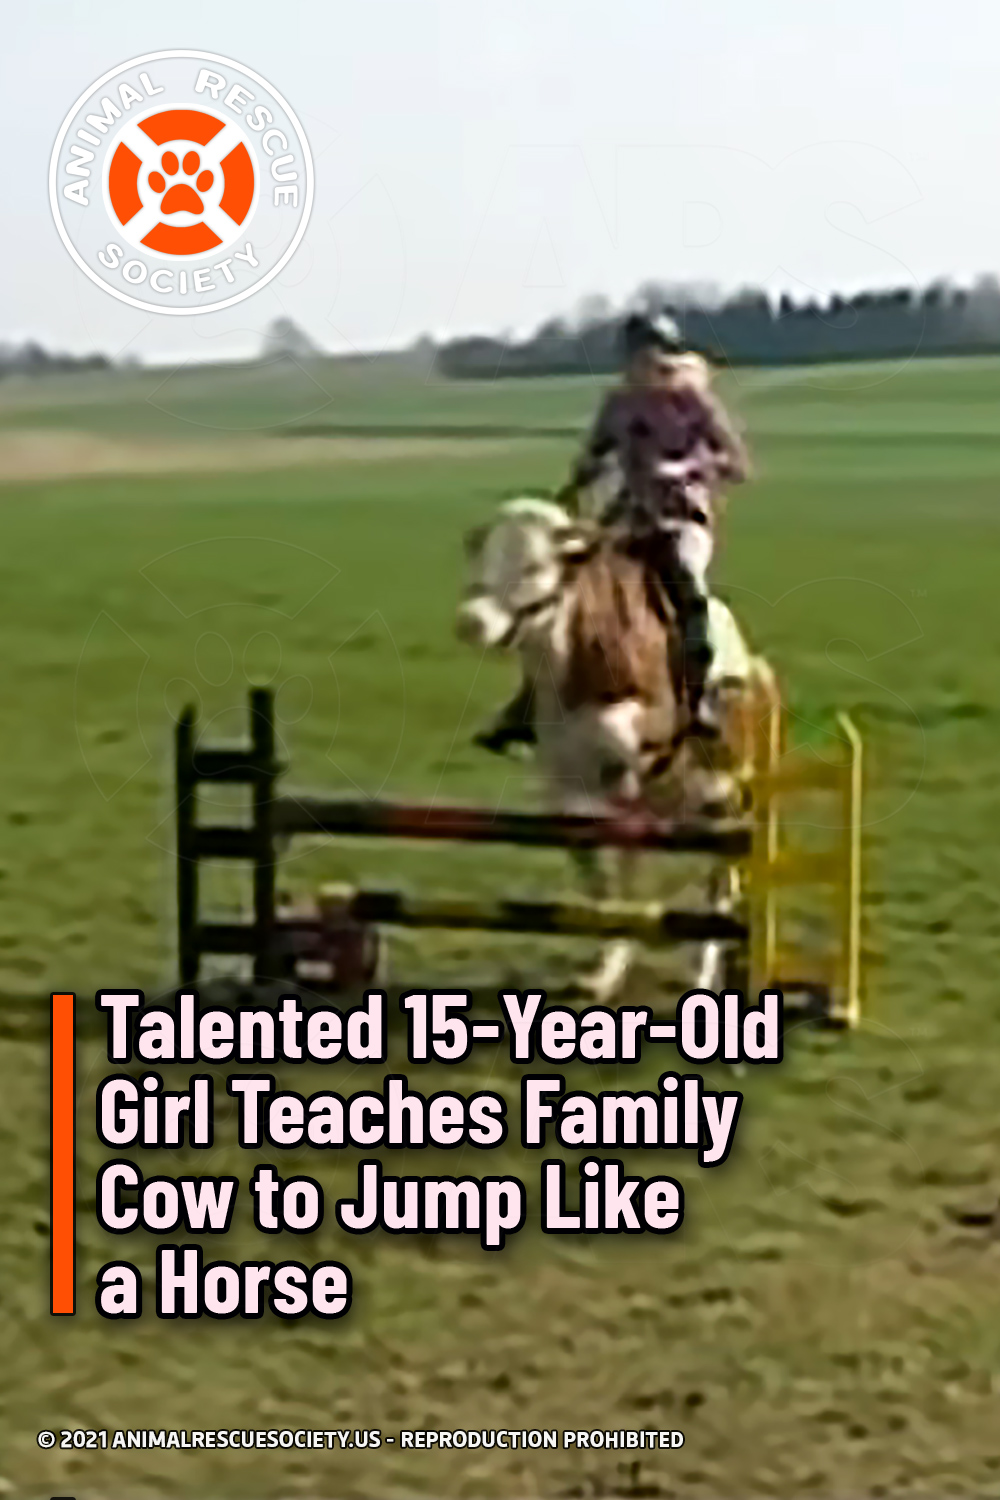 Talented 15-Year-Old Girl Teaches Family Cow to Jump Like a Horse